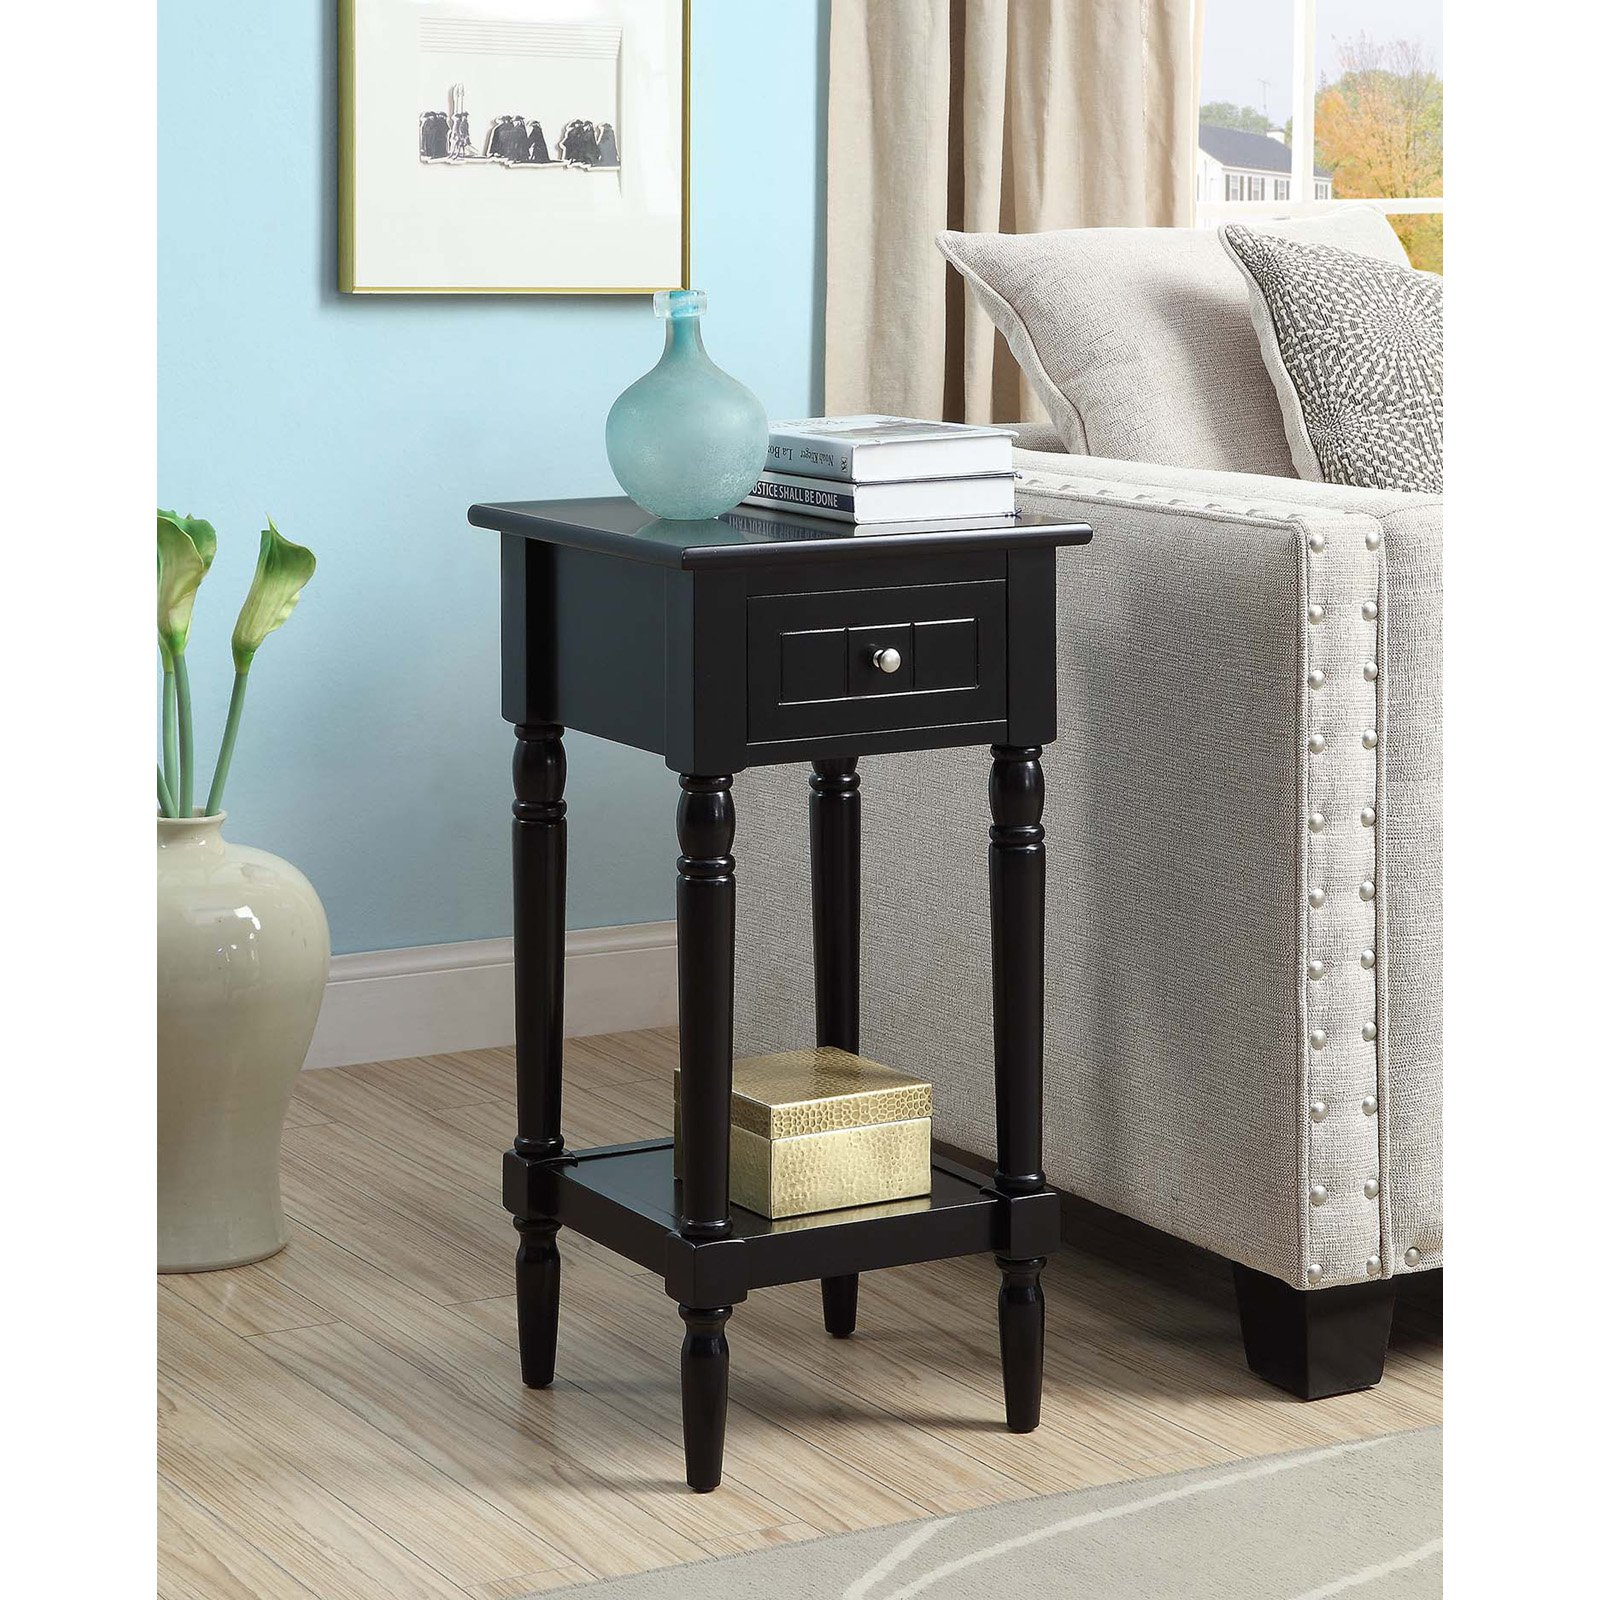 Convenience Concepts French Country Khloe Accent Table by Convenience Concepts